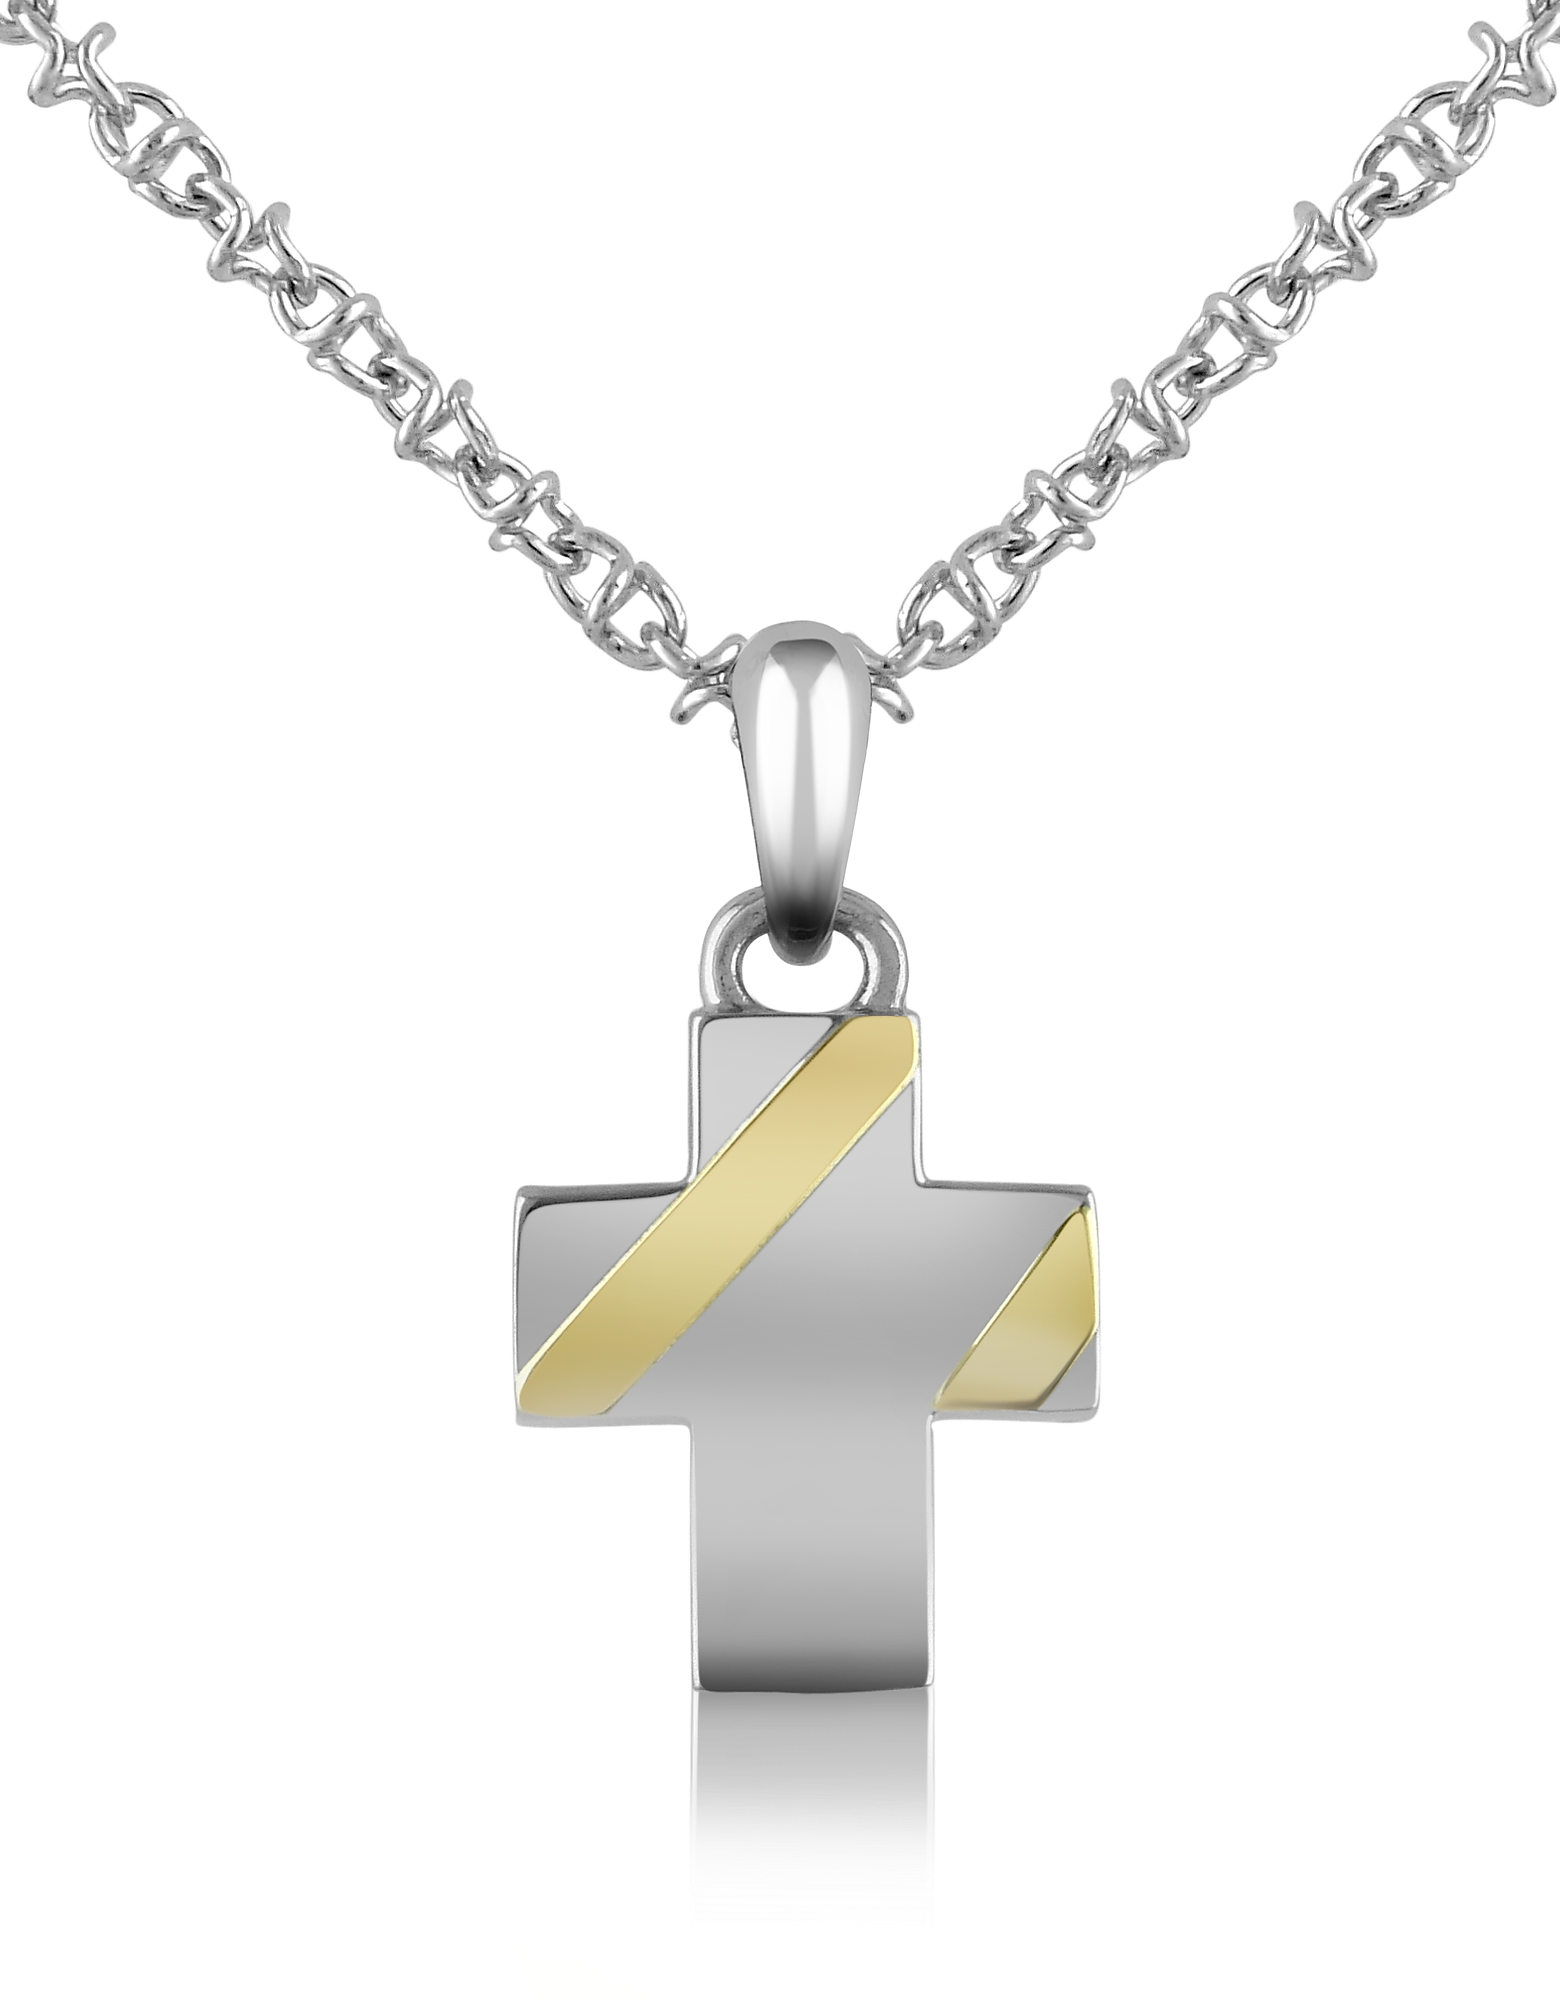 Stainless Steel Cross Pendant Necklace, Silver